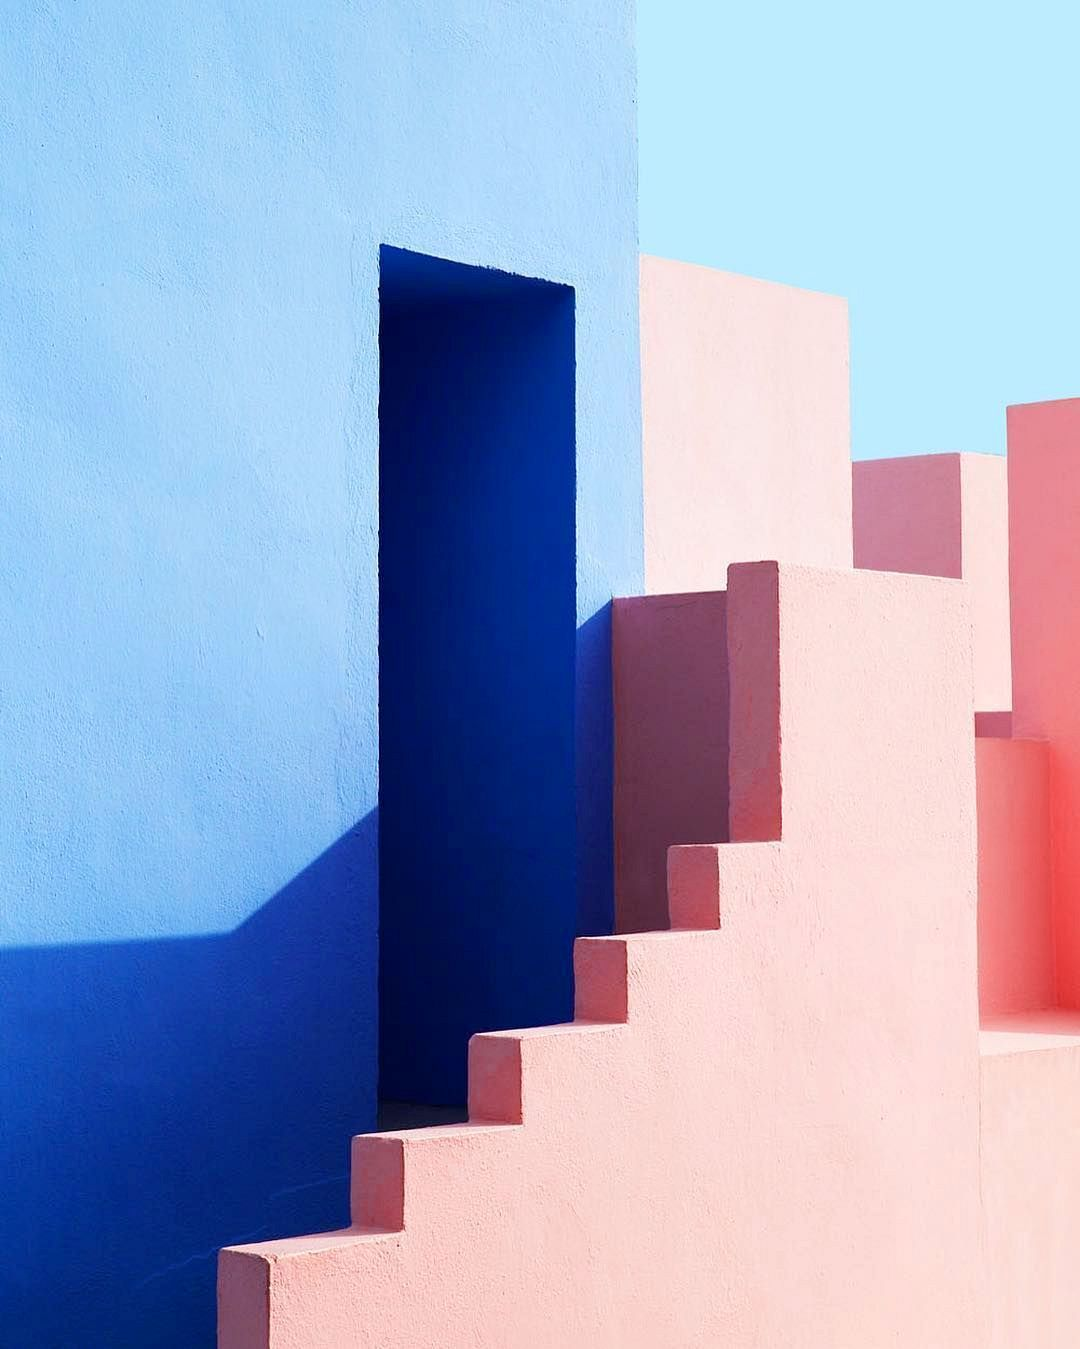 best of luis barragan home designs thar are colorfully aesthetic also inspirations architecture modern residential rh pinterest